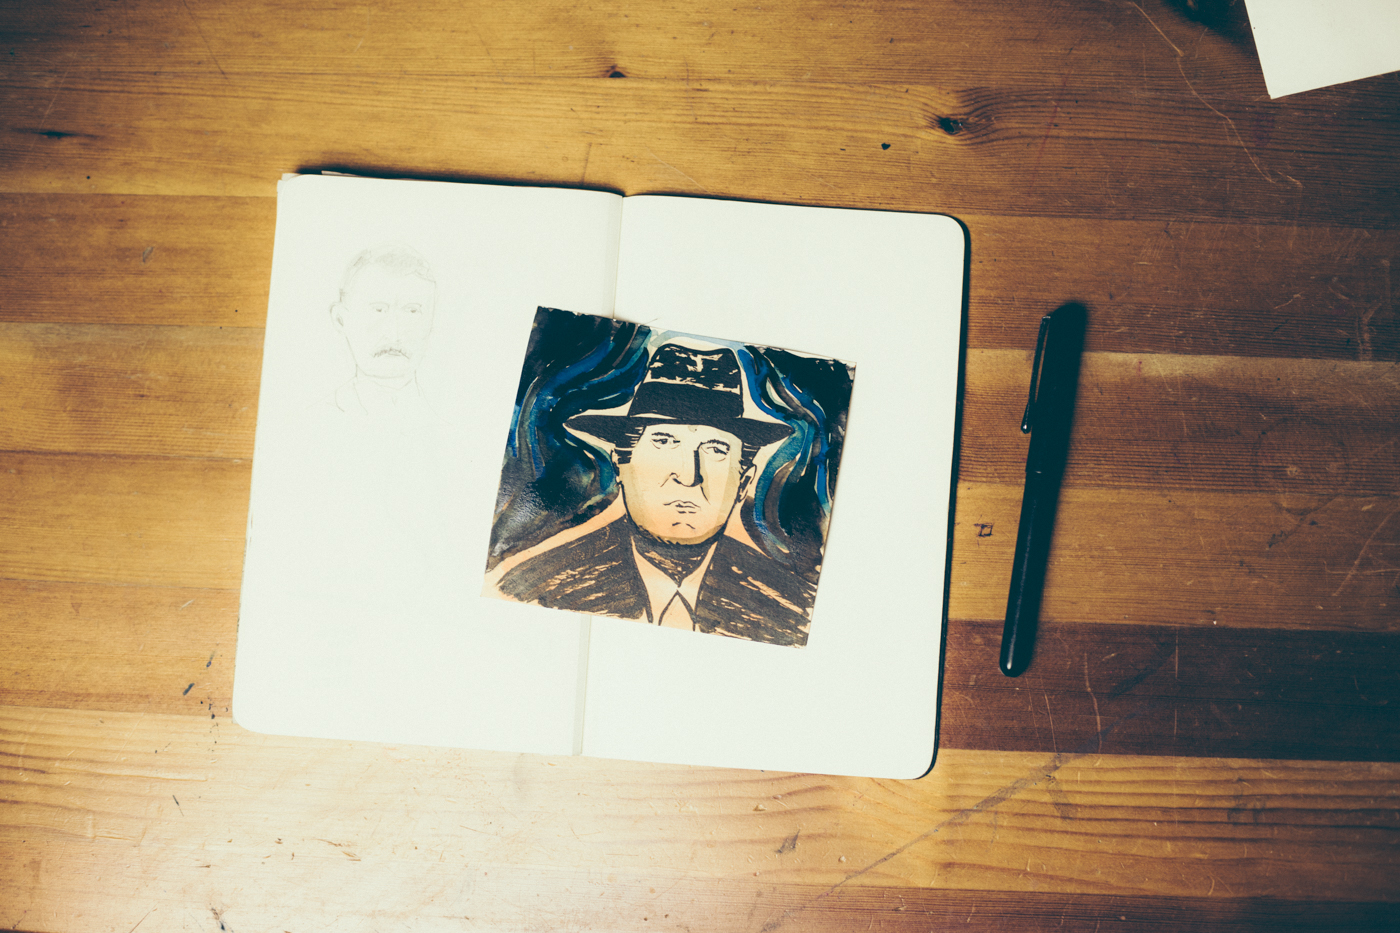 Sketch Edvard Munch